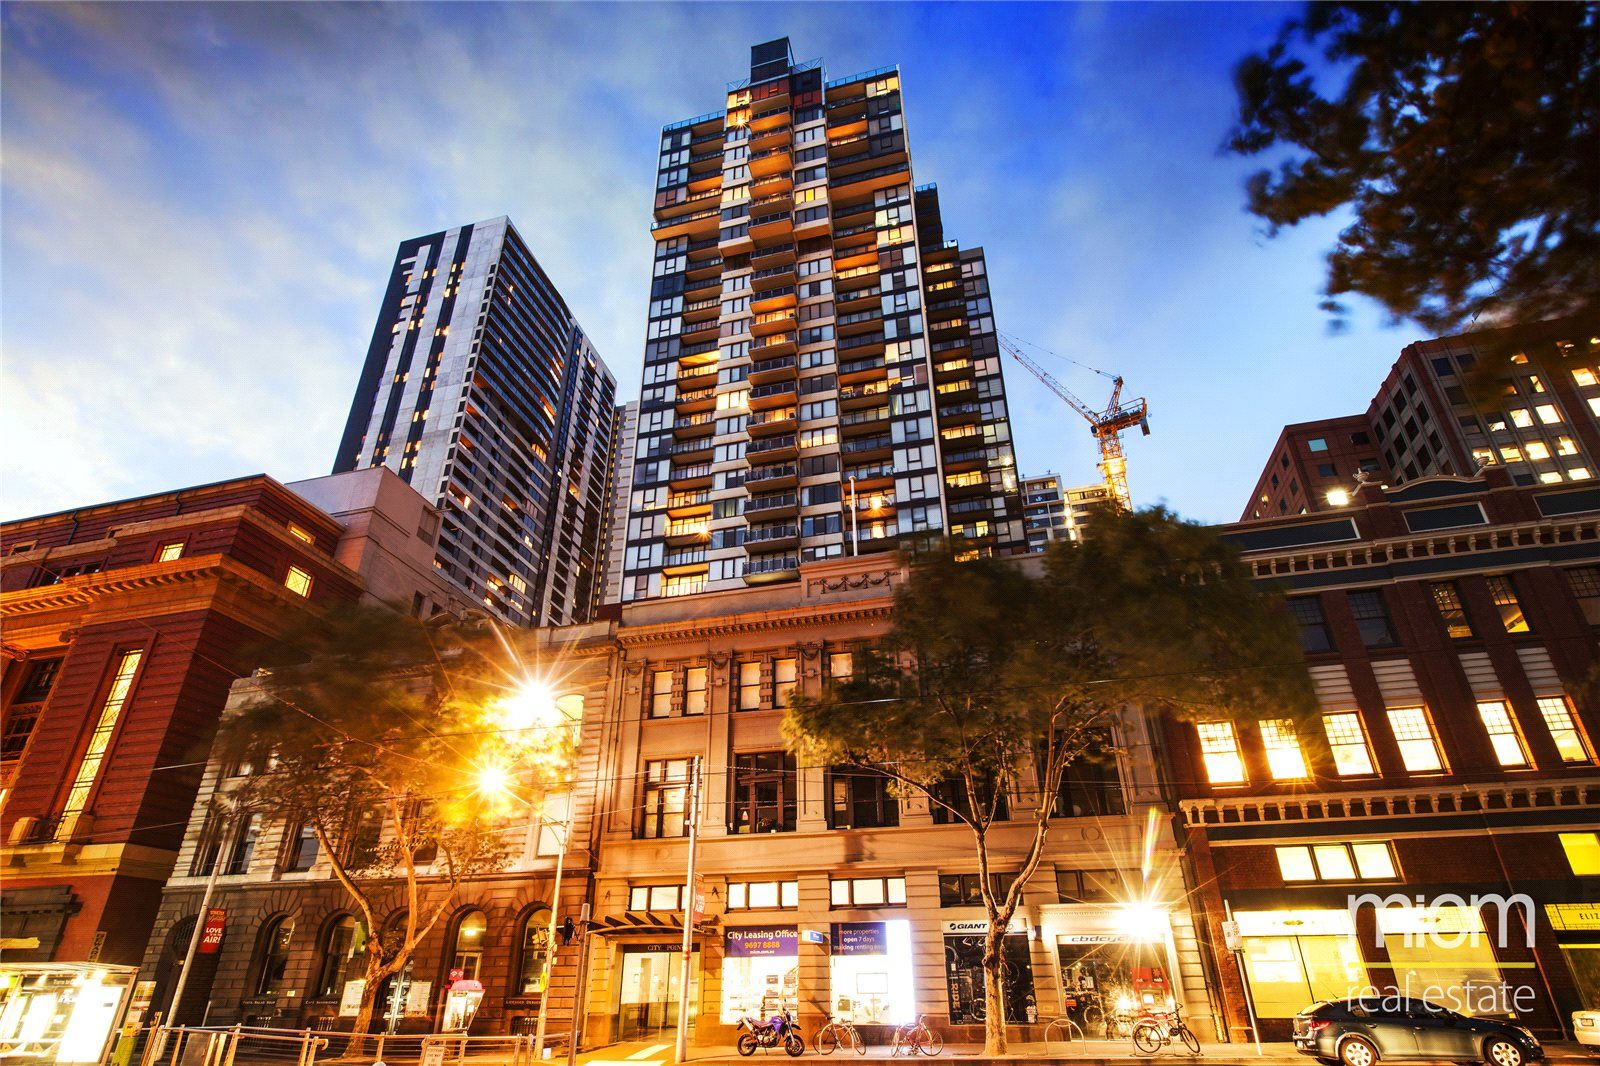 City Point: 22nd Floor - Island Of Style In the Sky!